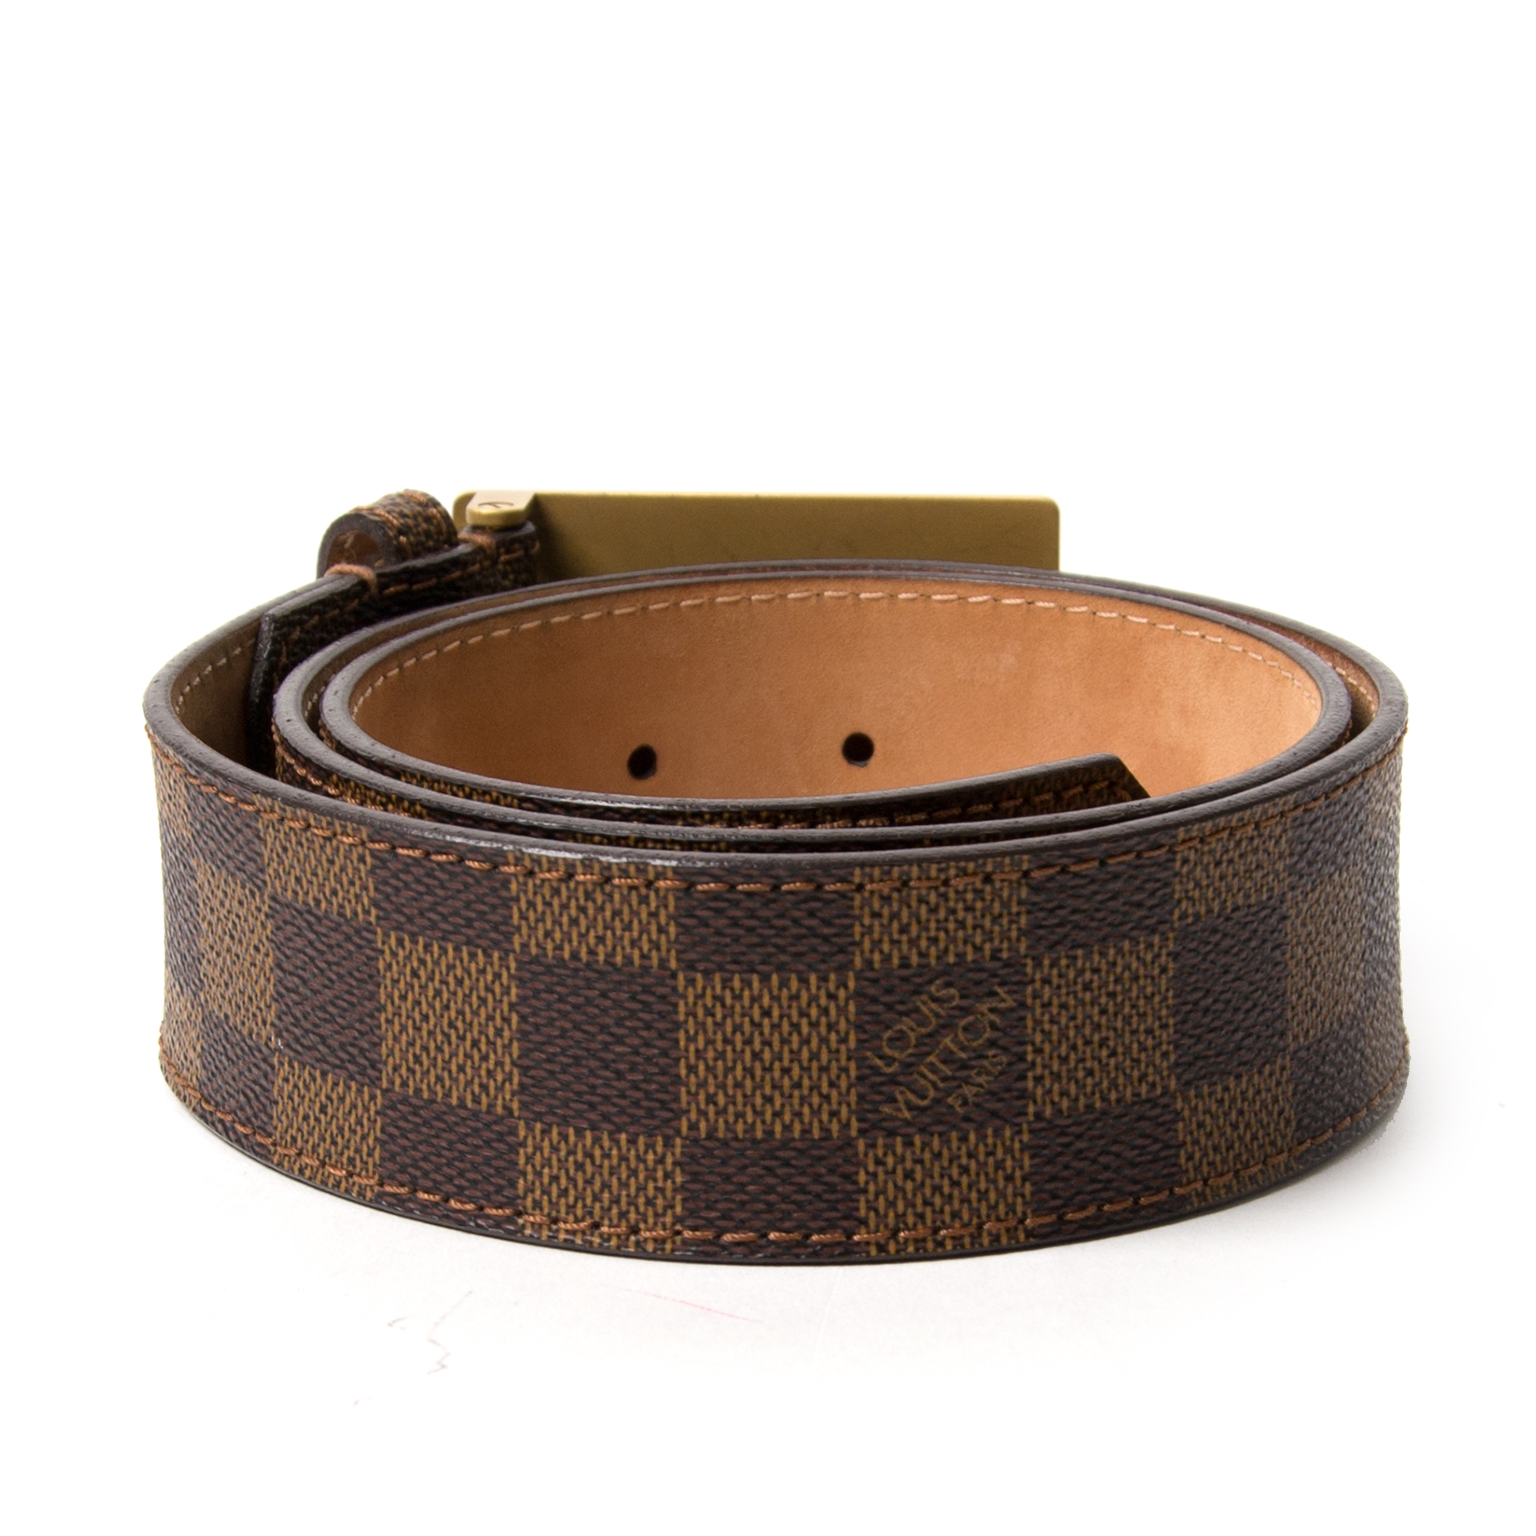 buyLouis Vuitton Damier Ebene Inventeur Belt - Size 80 and pay save online